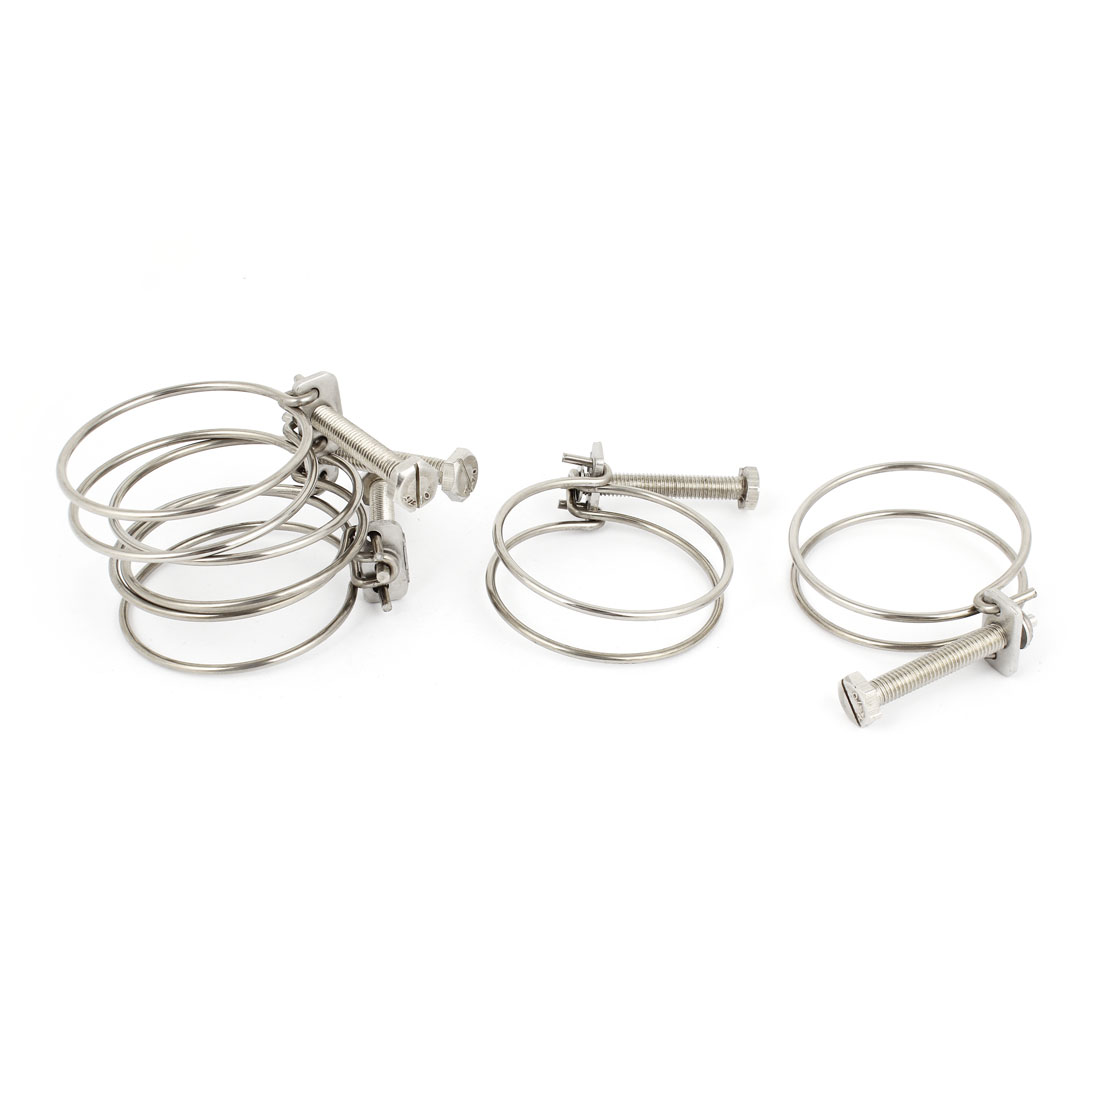 Adjustable 64mmx3mm Stainless Steel Water Tube Wire Hose Clamps 5 Pcs